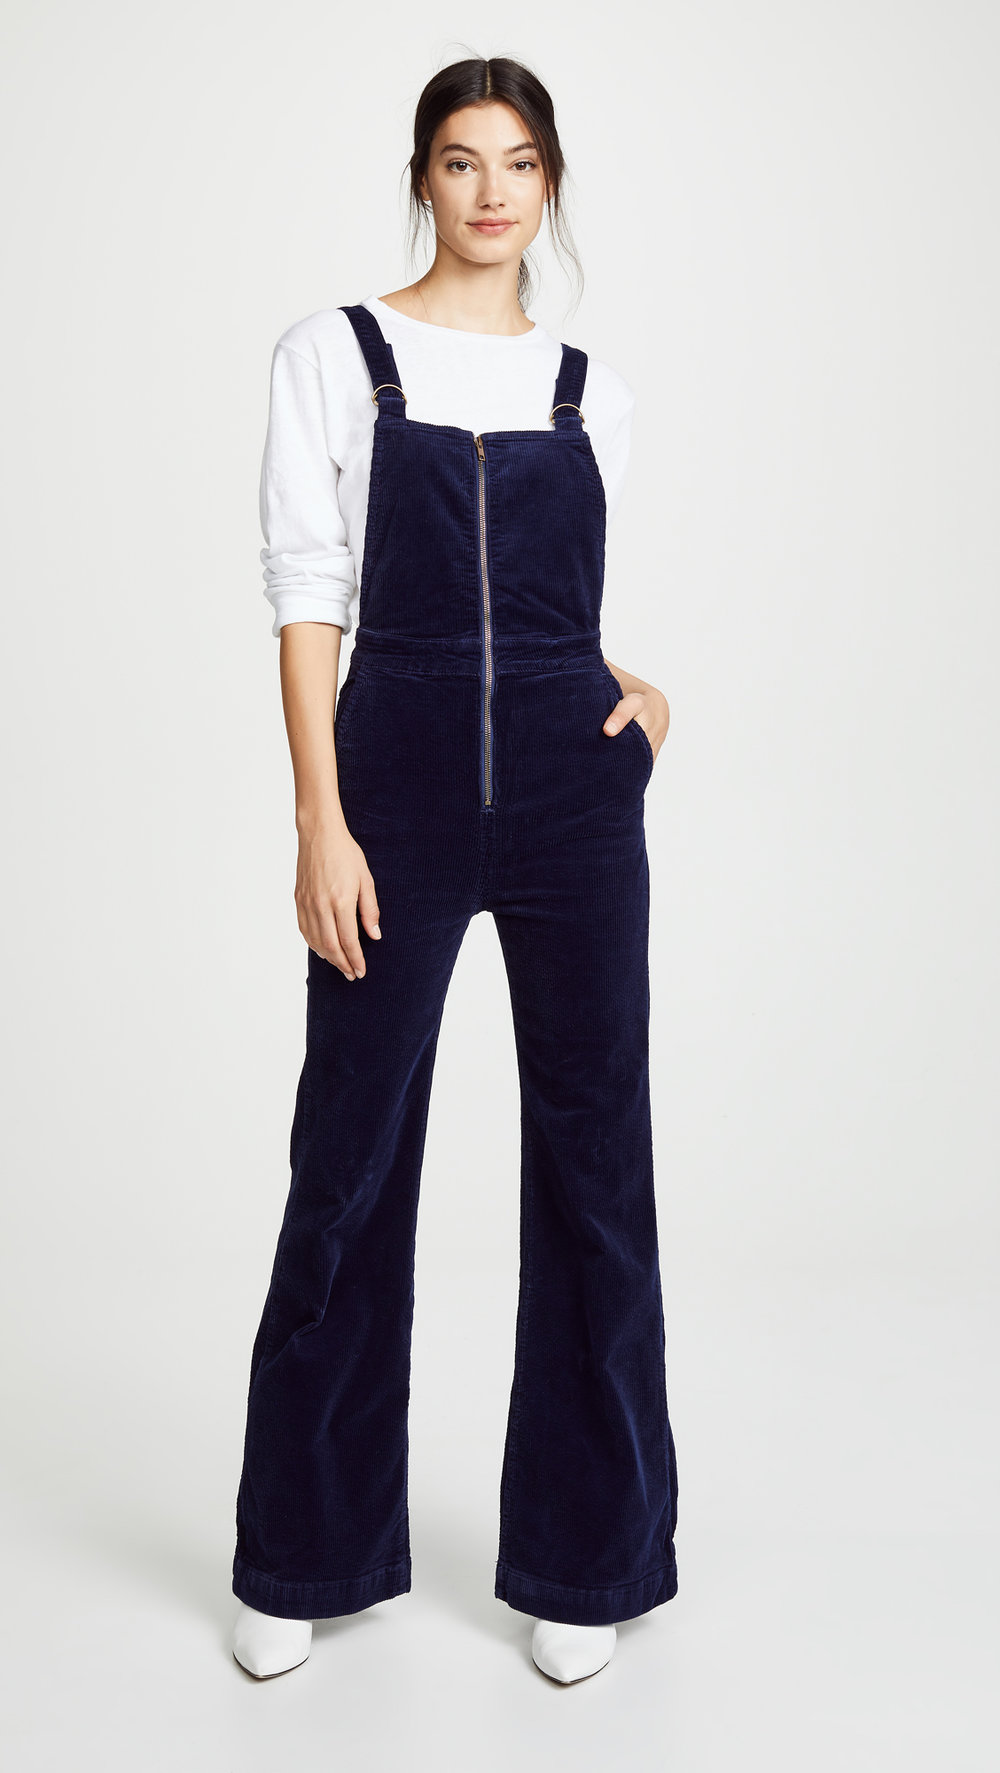 Rolla'sFlare Overalls - Was: $129.00Now: $77.40